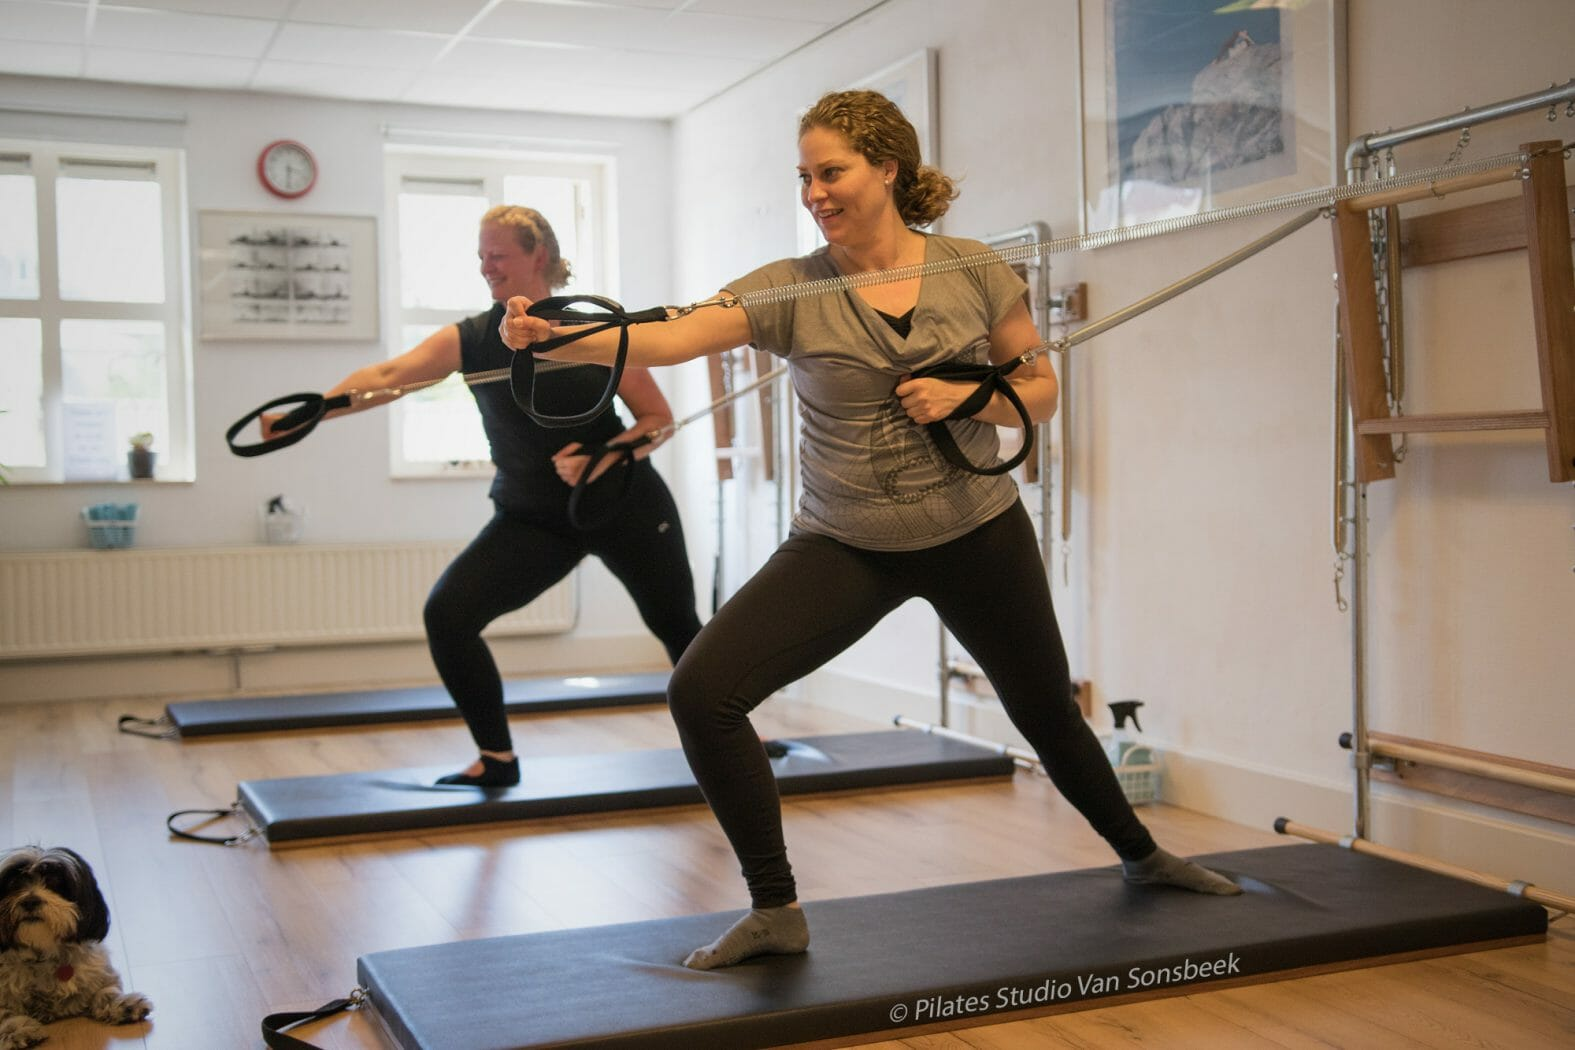 Fencing met de Arm Springs van de Wall Tower bij Pilates Studio van Sonsbeek